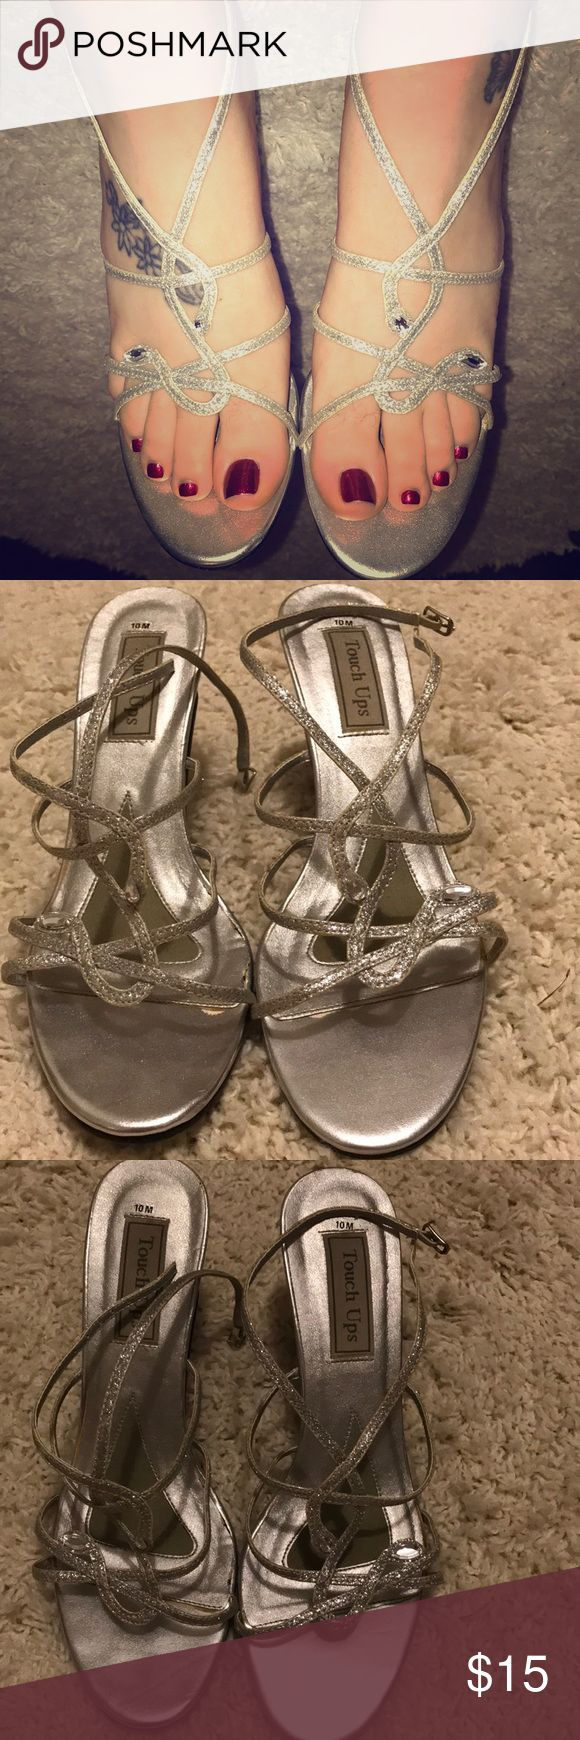 """Silver heels 🌺 prom shoes 🌺 bridesmaid heels Good used condition   Some wear noted Silver color with clear rhinestones  Size 10  Approximately 3.5"""" rise  Great for prom, bridesmaids or other formal events Touch Ups Shoes Heels"""